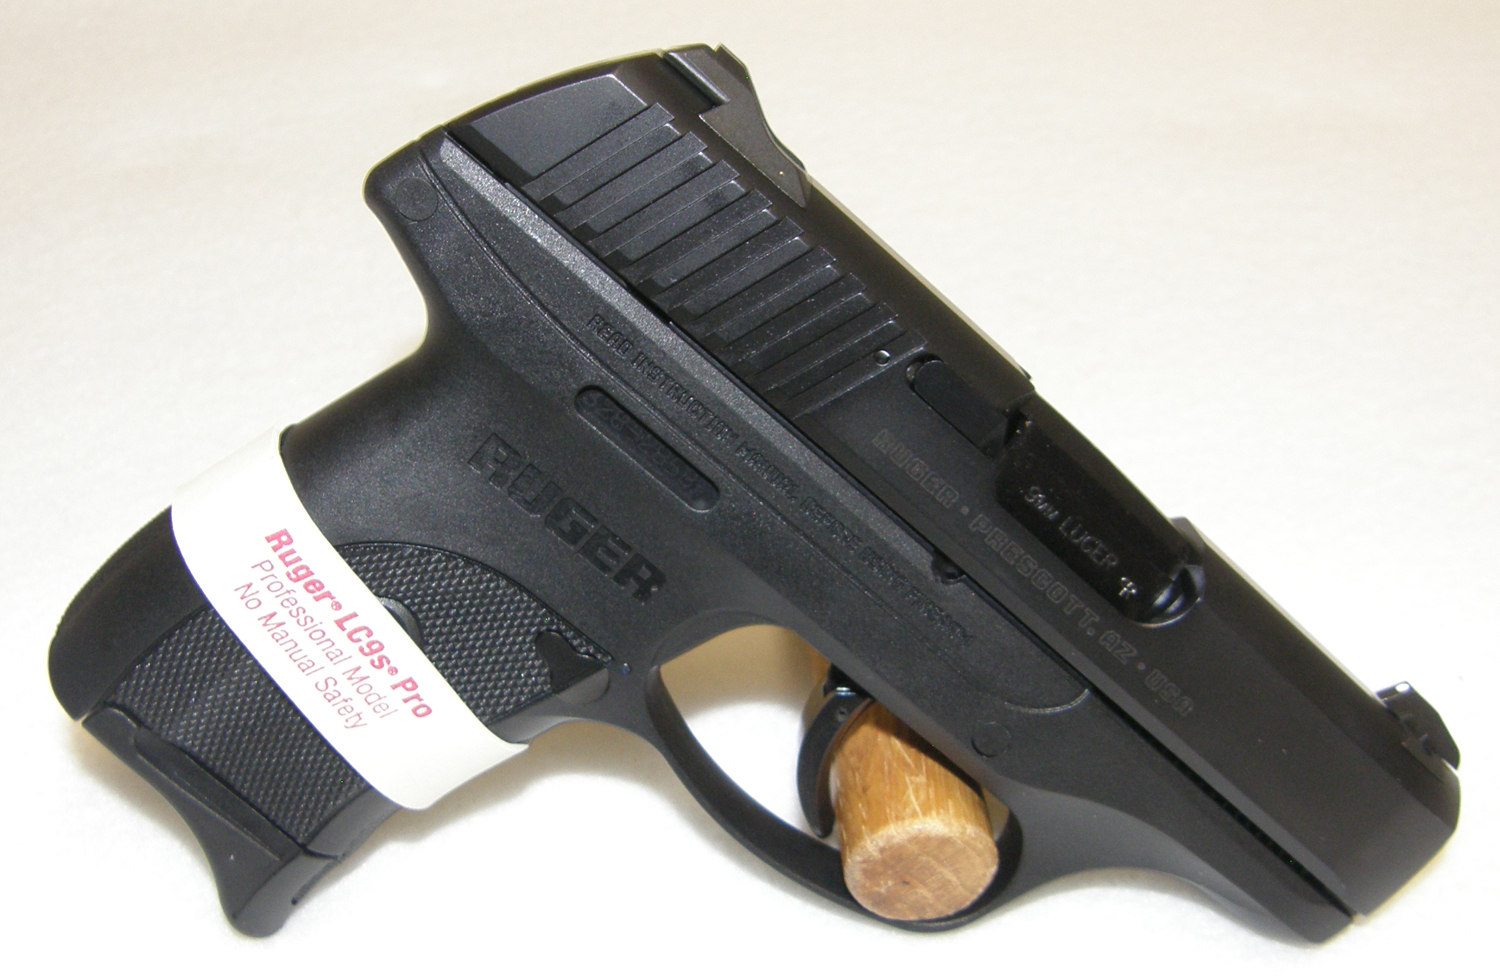 Ruger Lc9s Pro 9mm Concealed Carry Pistol No Thumb